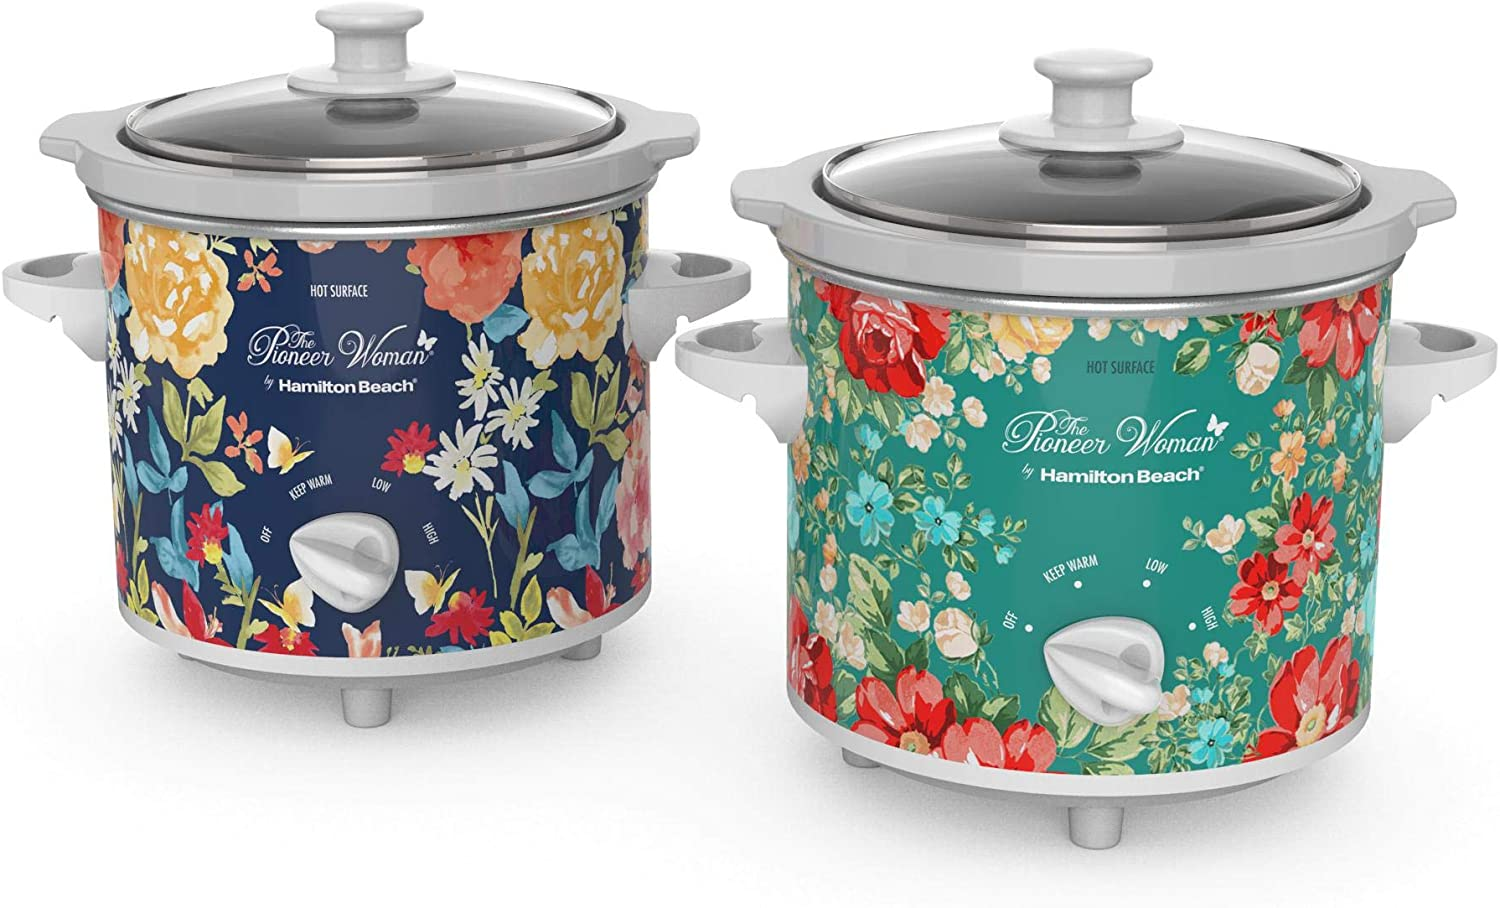 Pioneer Woman 1.5 Quart Slow Cooker (Set of 2) Fiona Floral/Vintage Floral | Model# 33016 by Hamilton Beach (6)